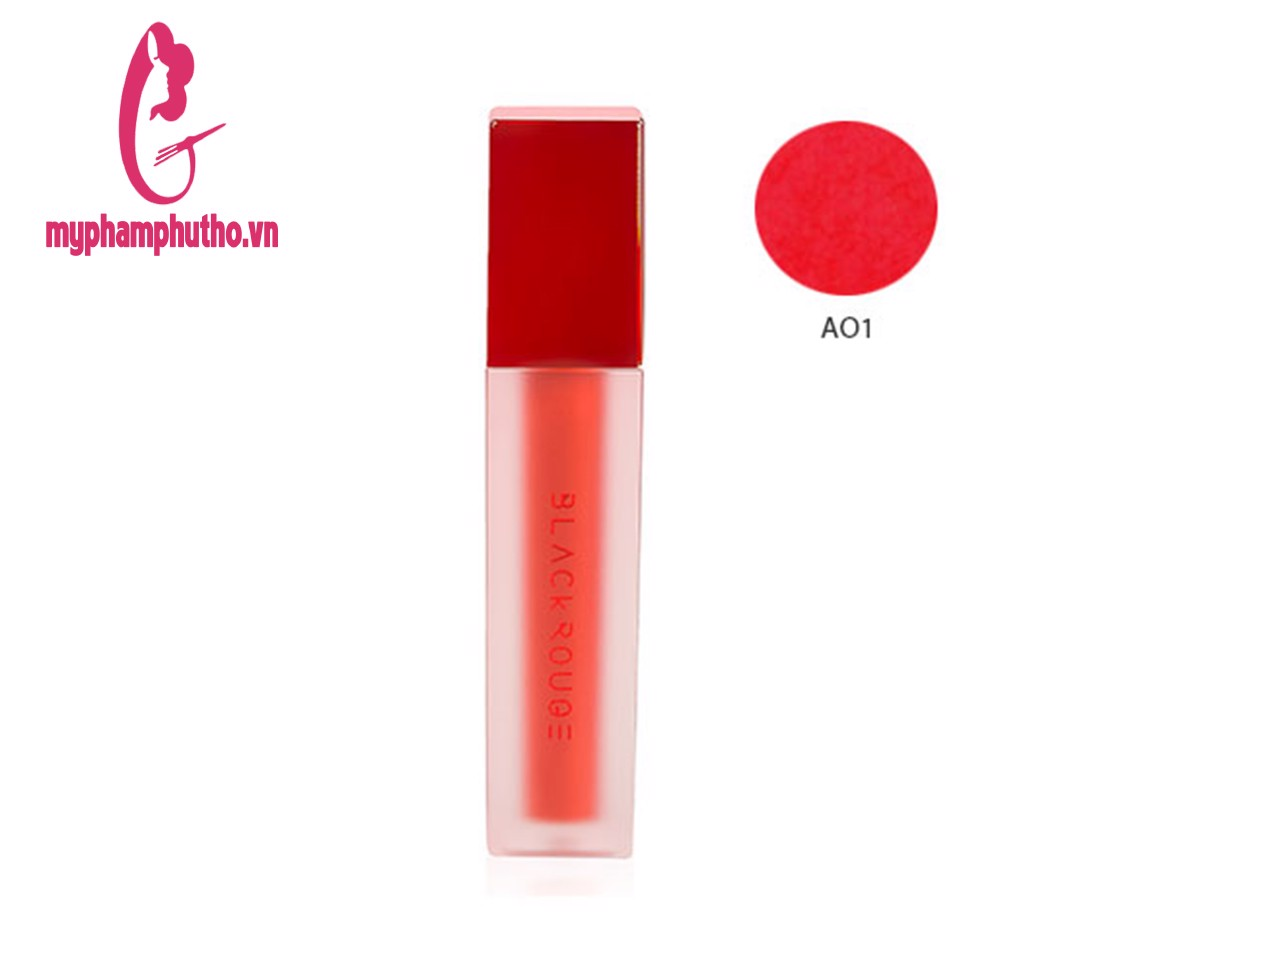 Son Kem Siêu Lì Black Rouge Air Fit Velvet Tint Màu A01